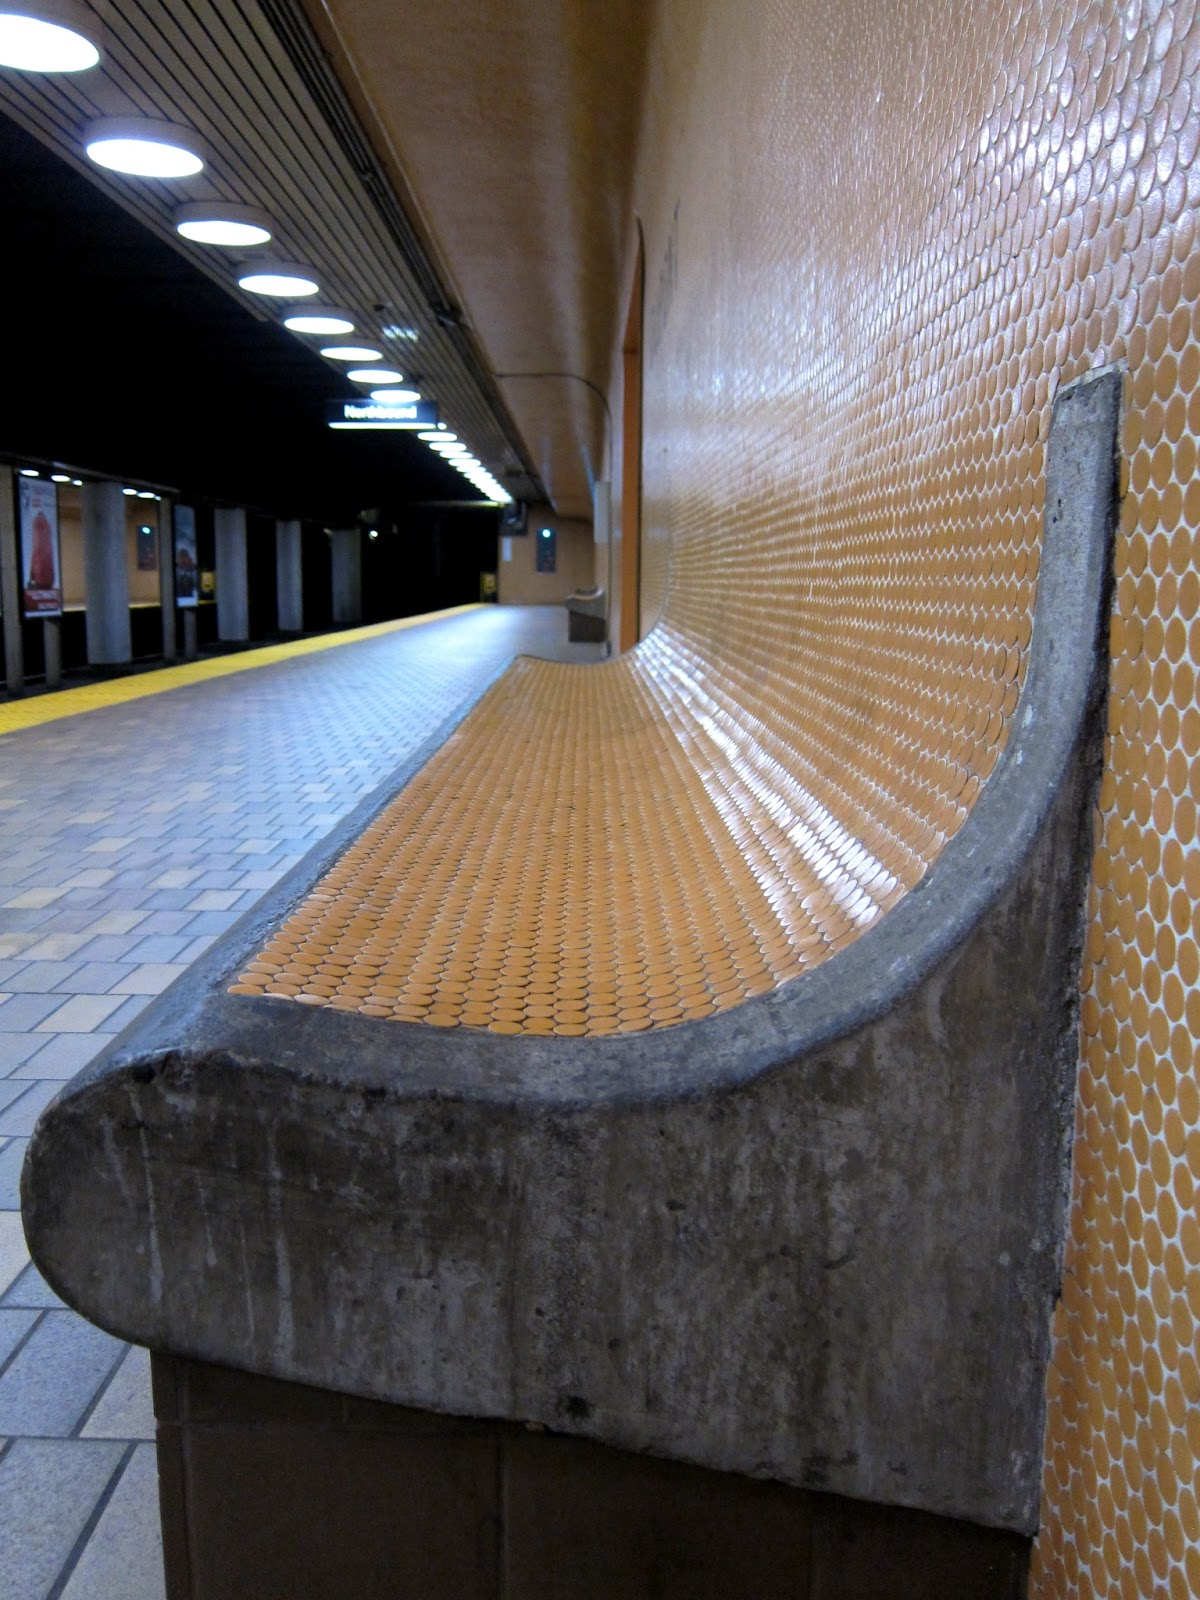 Bench at Dupont station platform level